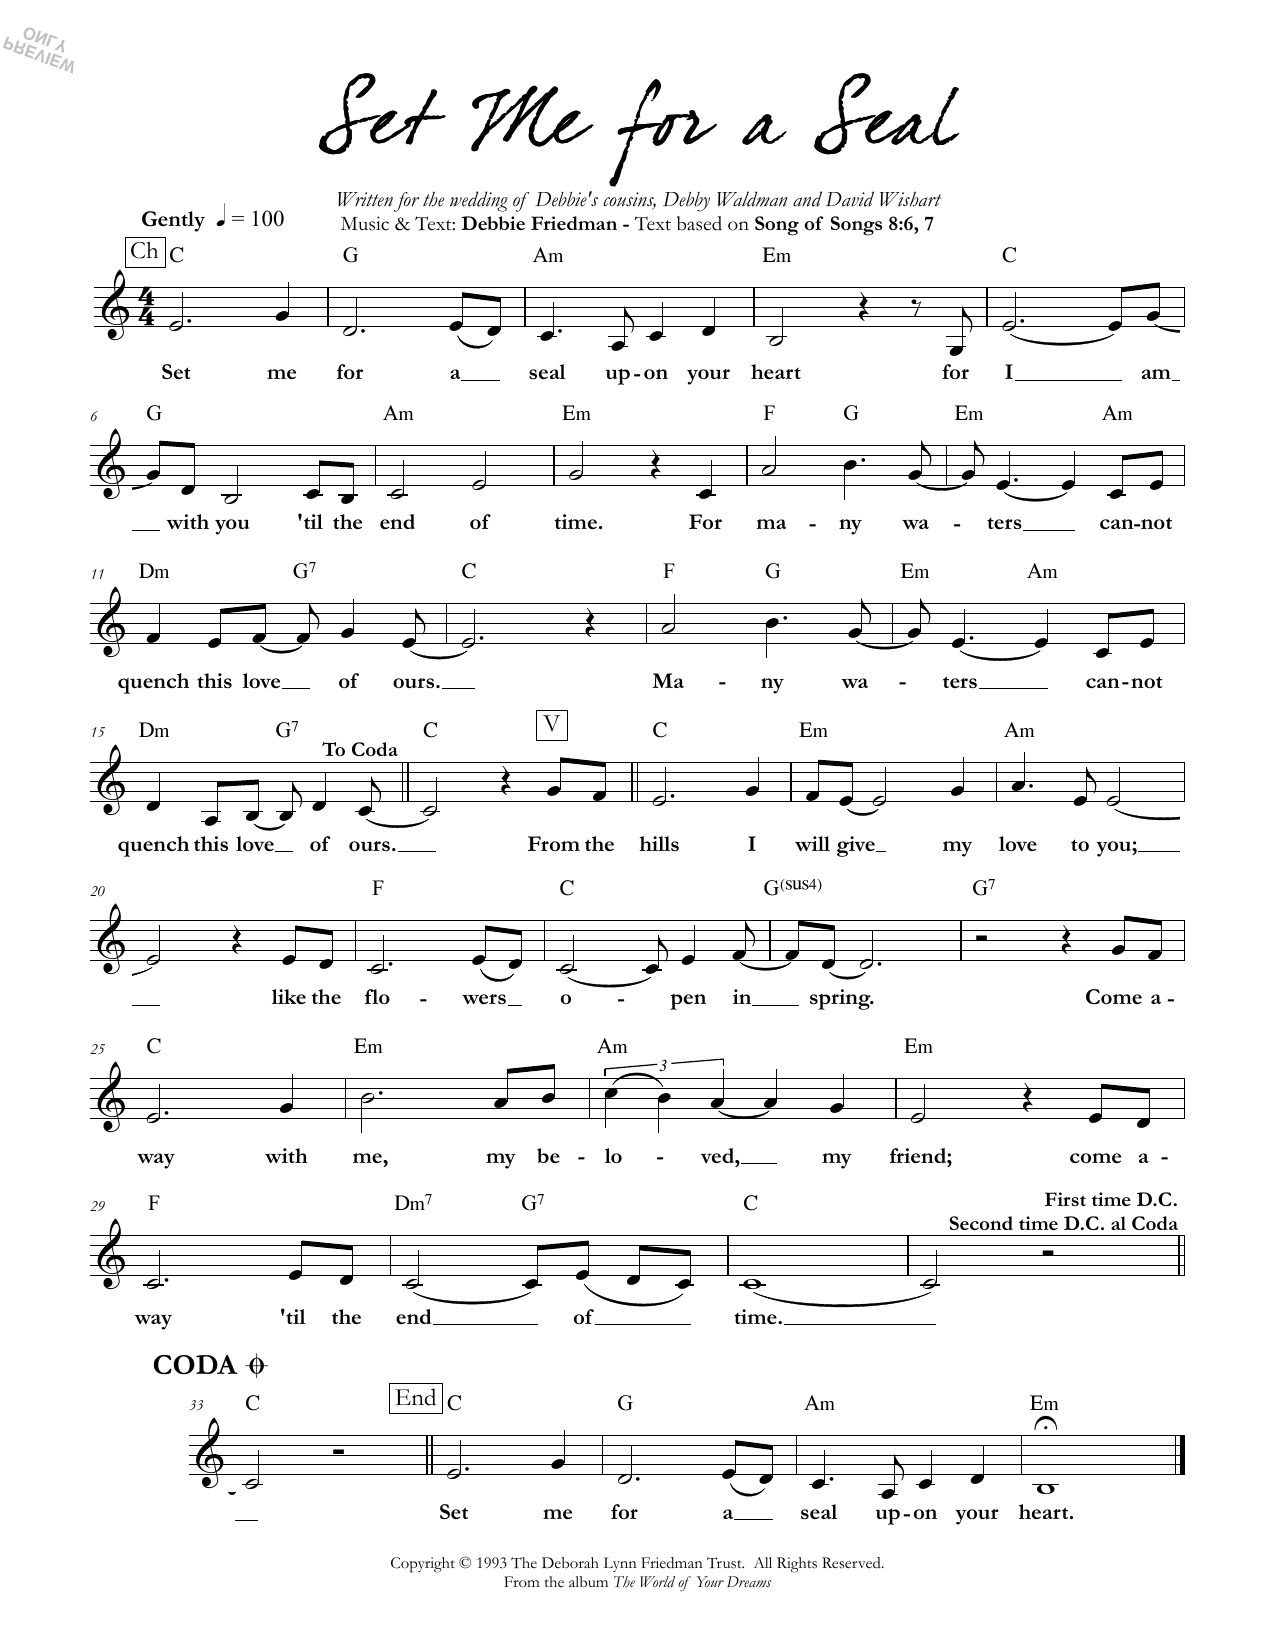 Set Me for a Seal Sheet Music